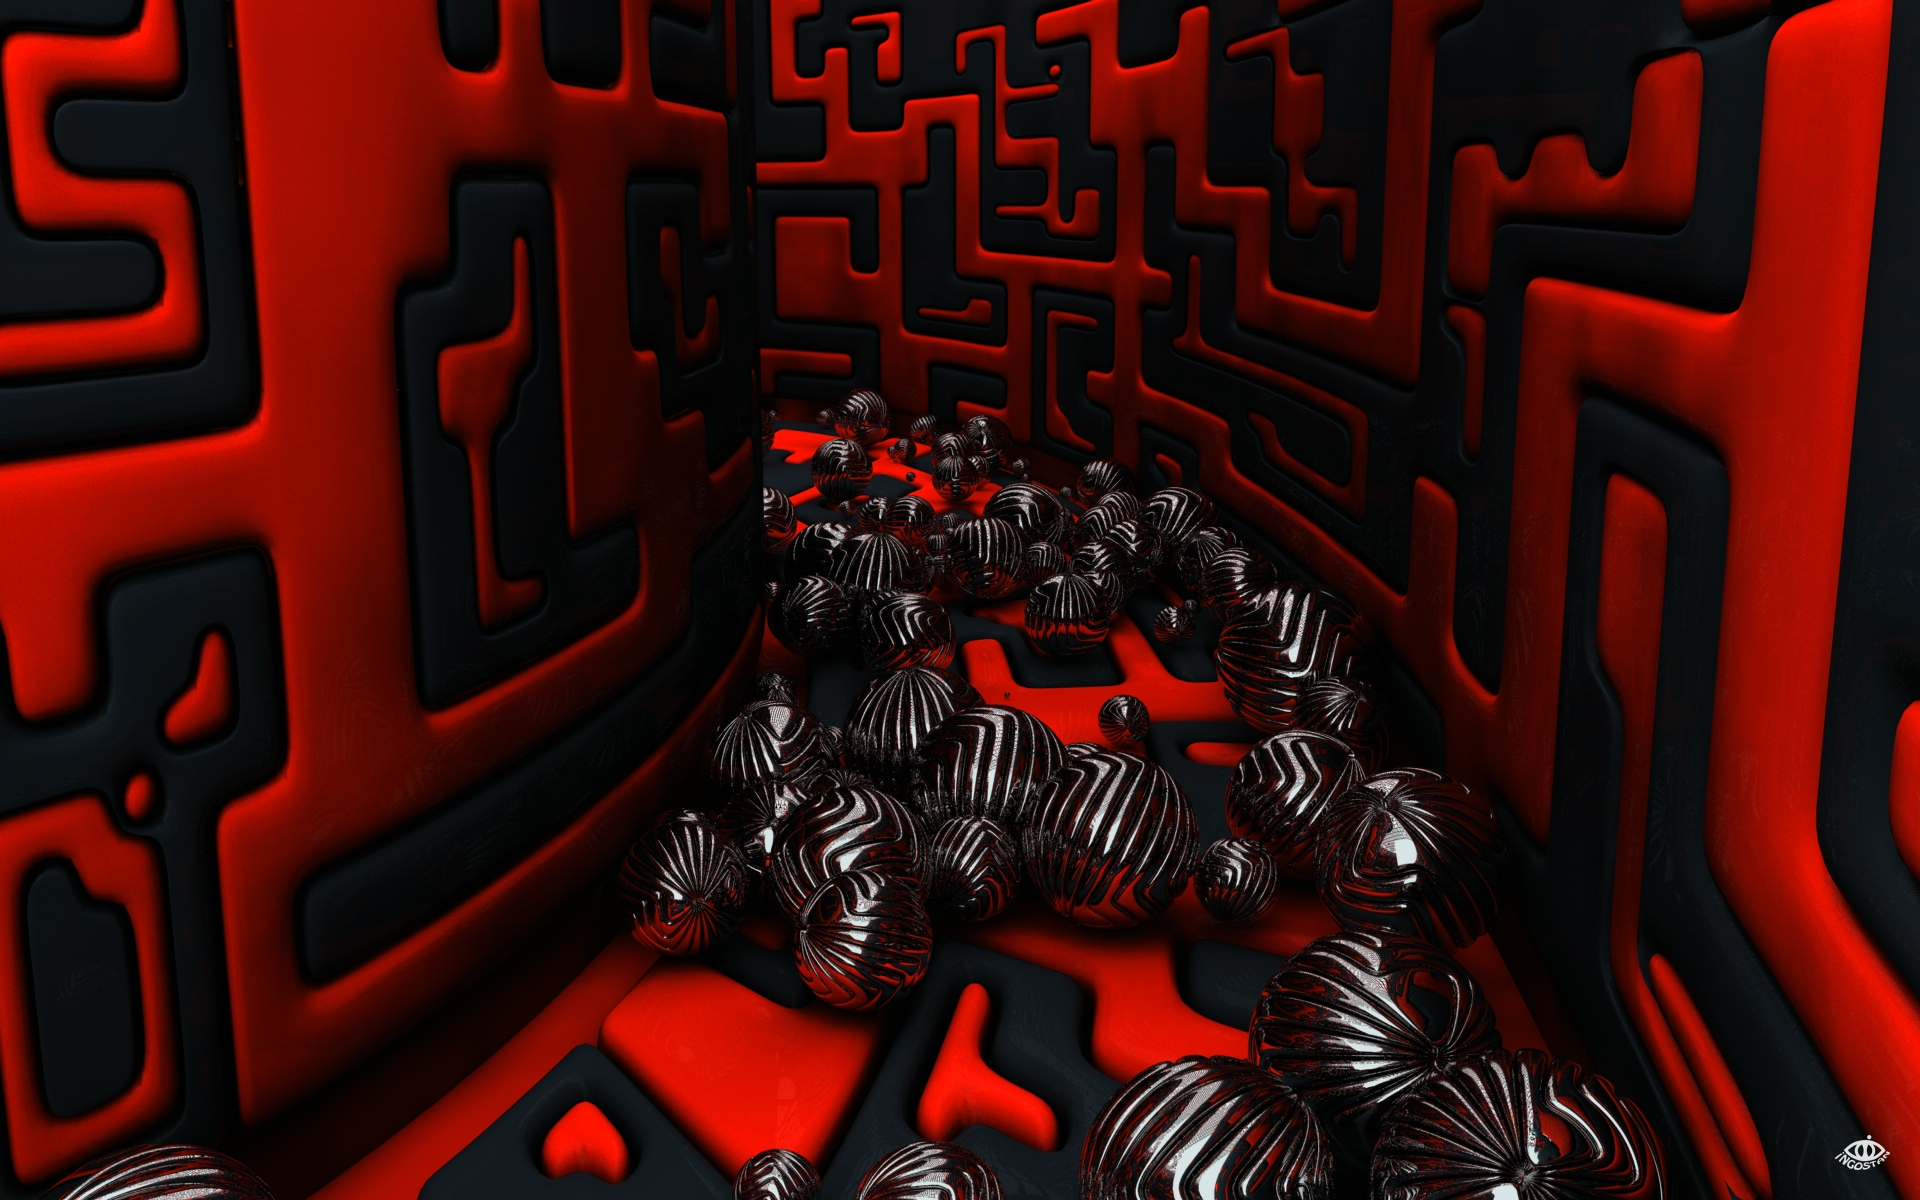 Black Wallpaper Hd 13 Awesome Black And Red Wallpapers Hd The Nology